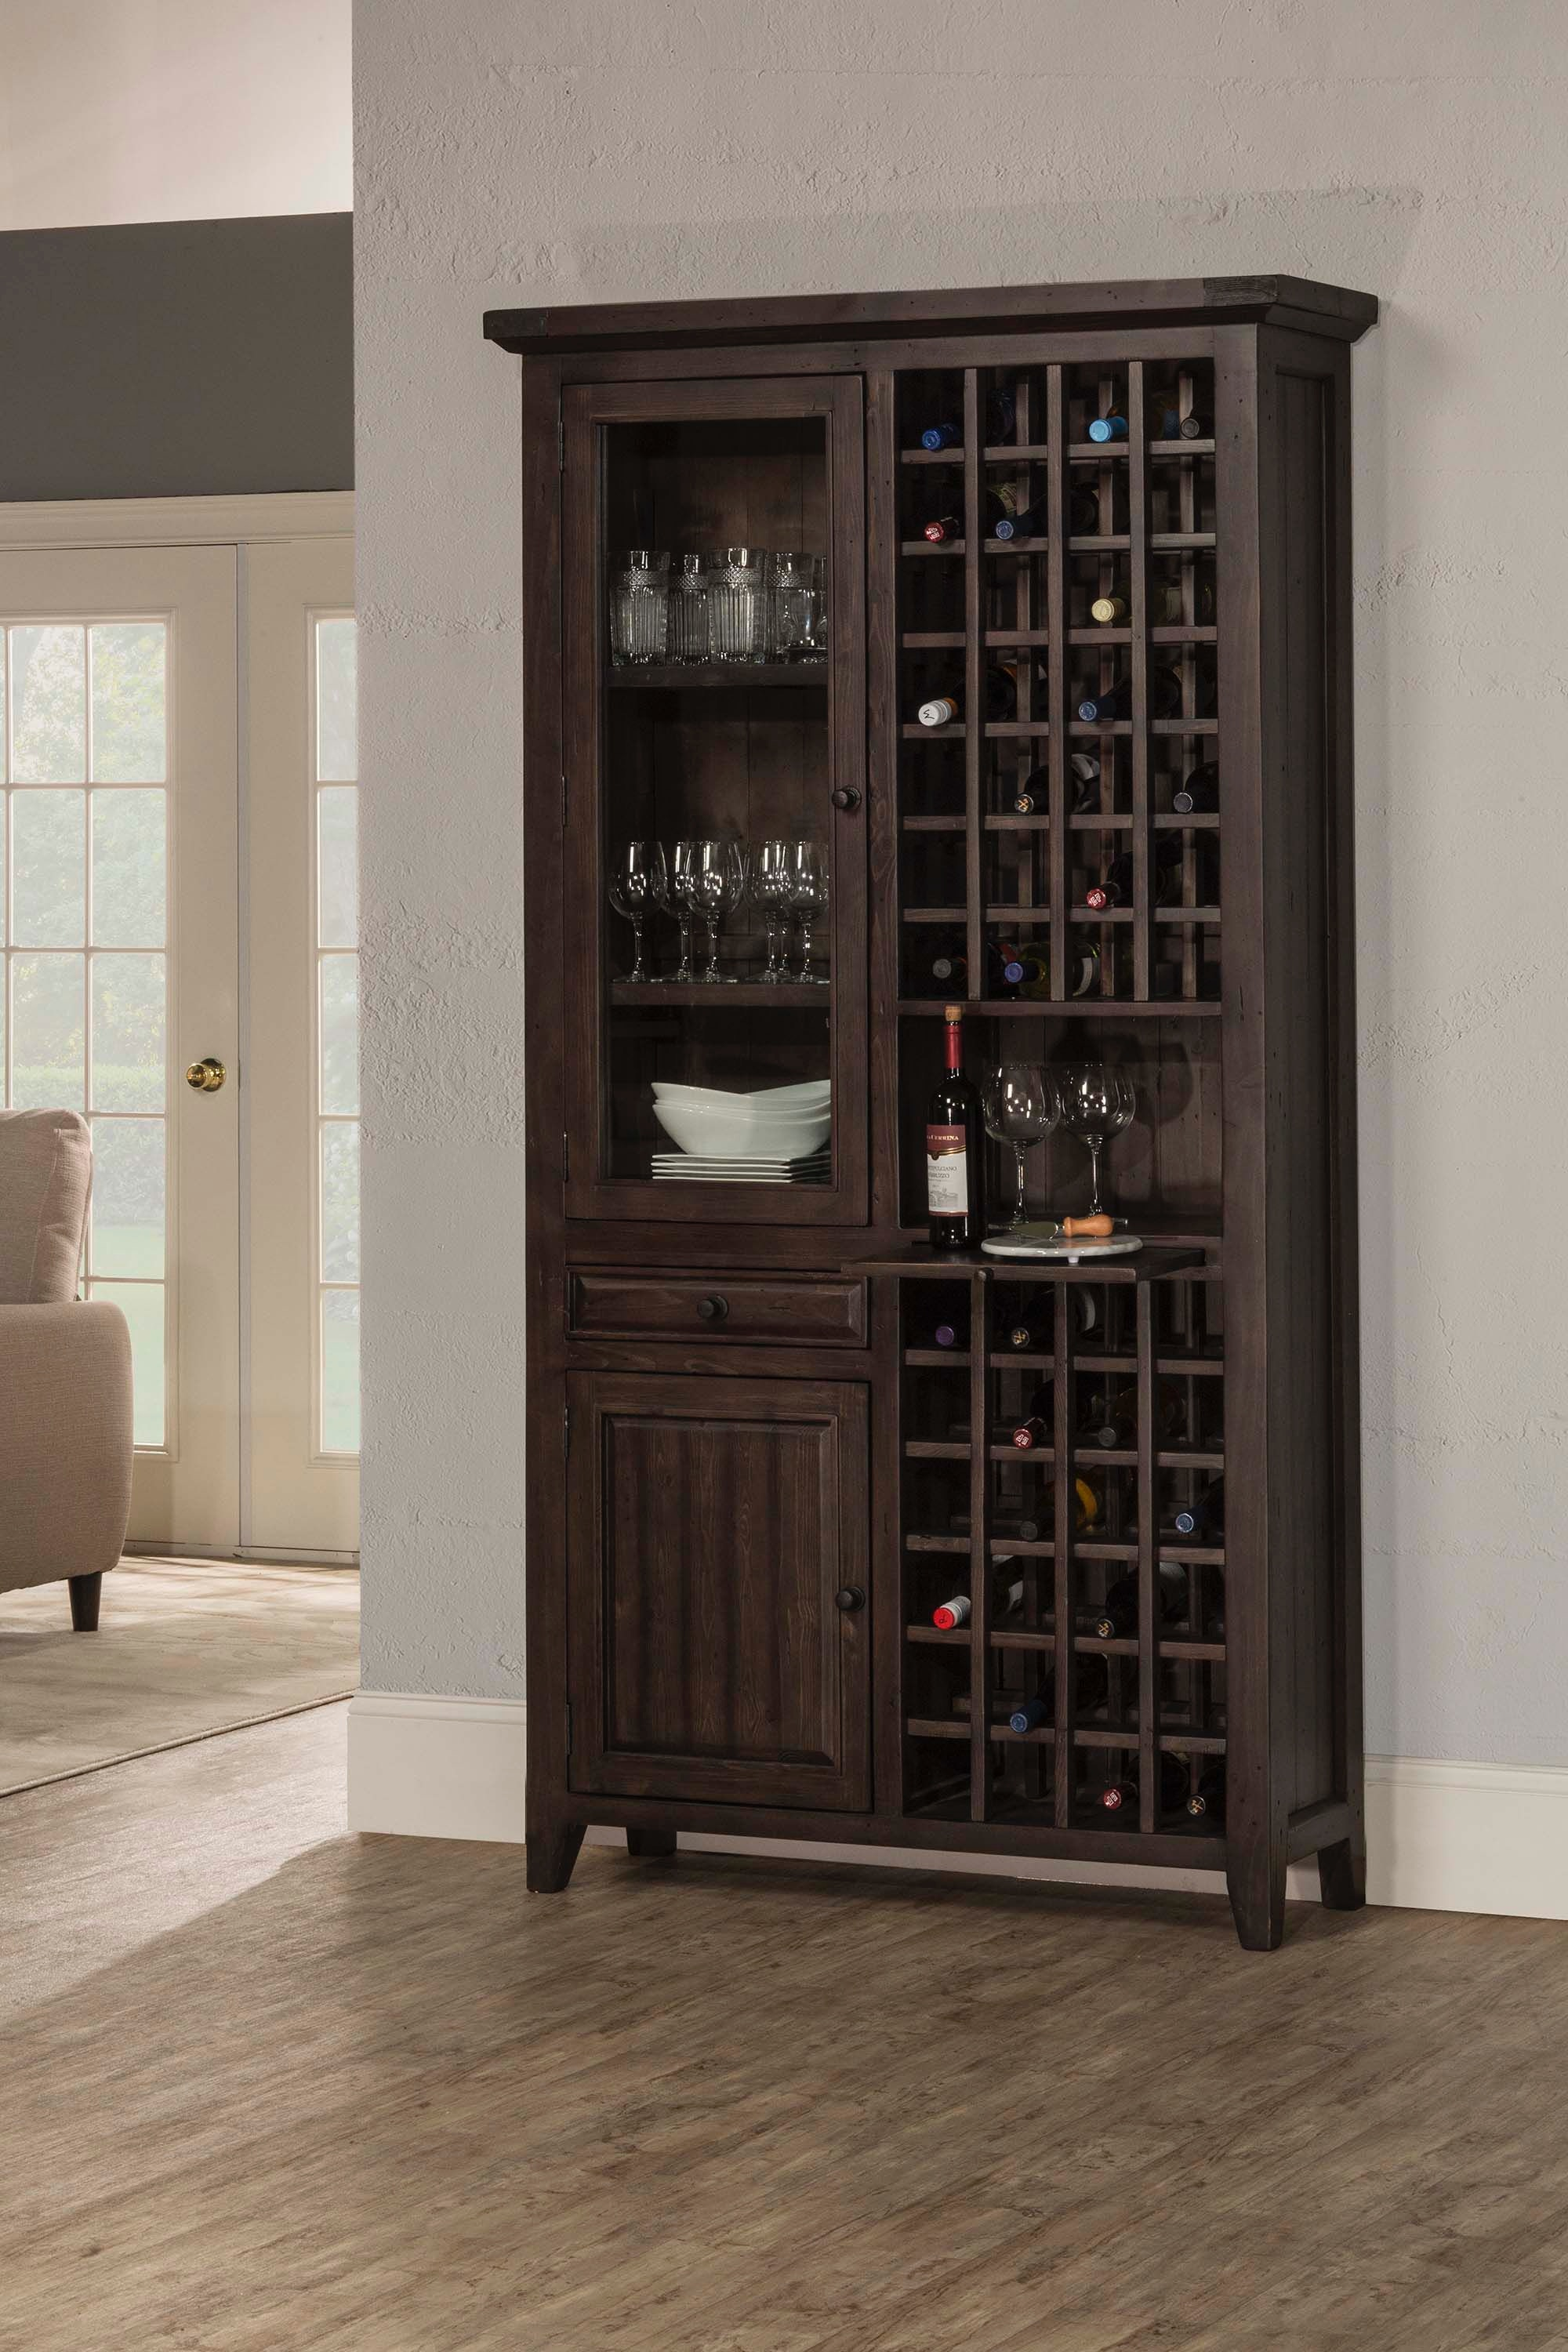 dining room cabinets winner furniture louisville owensboro hillsdale furniture tuscan retreat tall wine storage 5823 949w